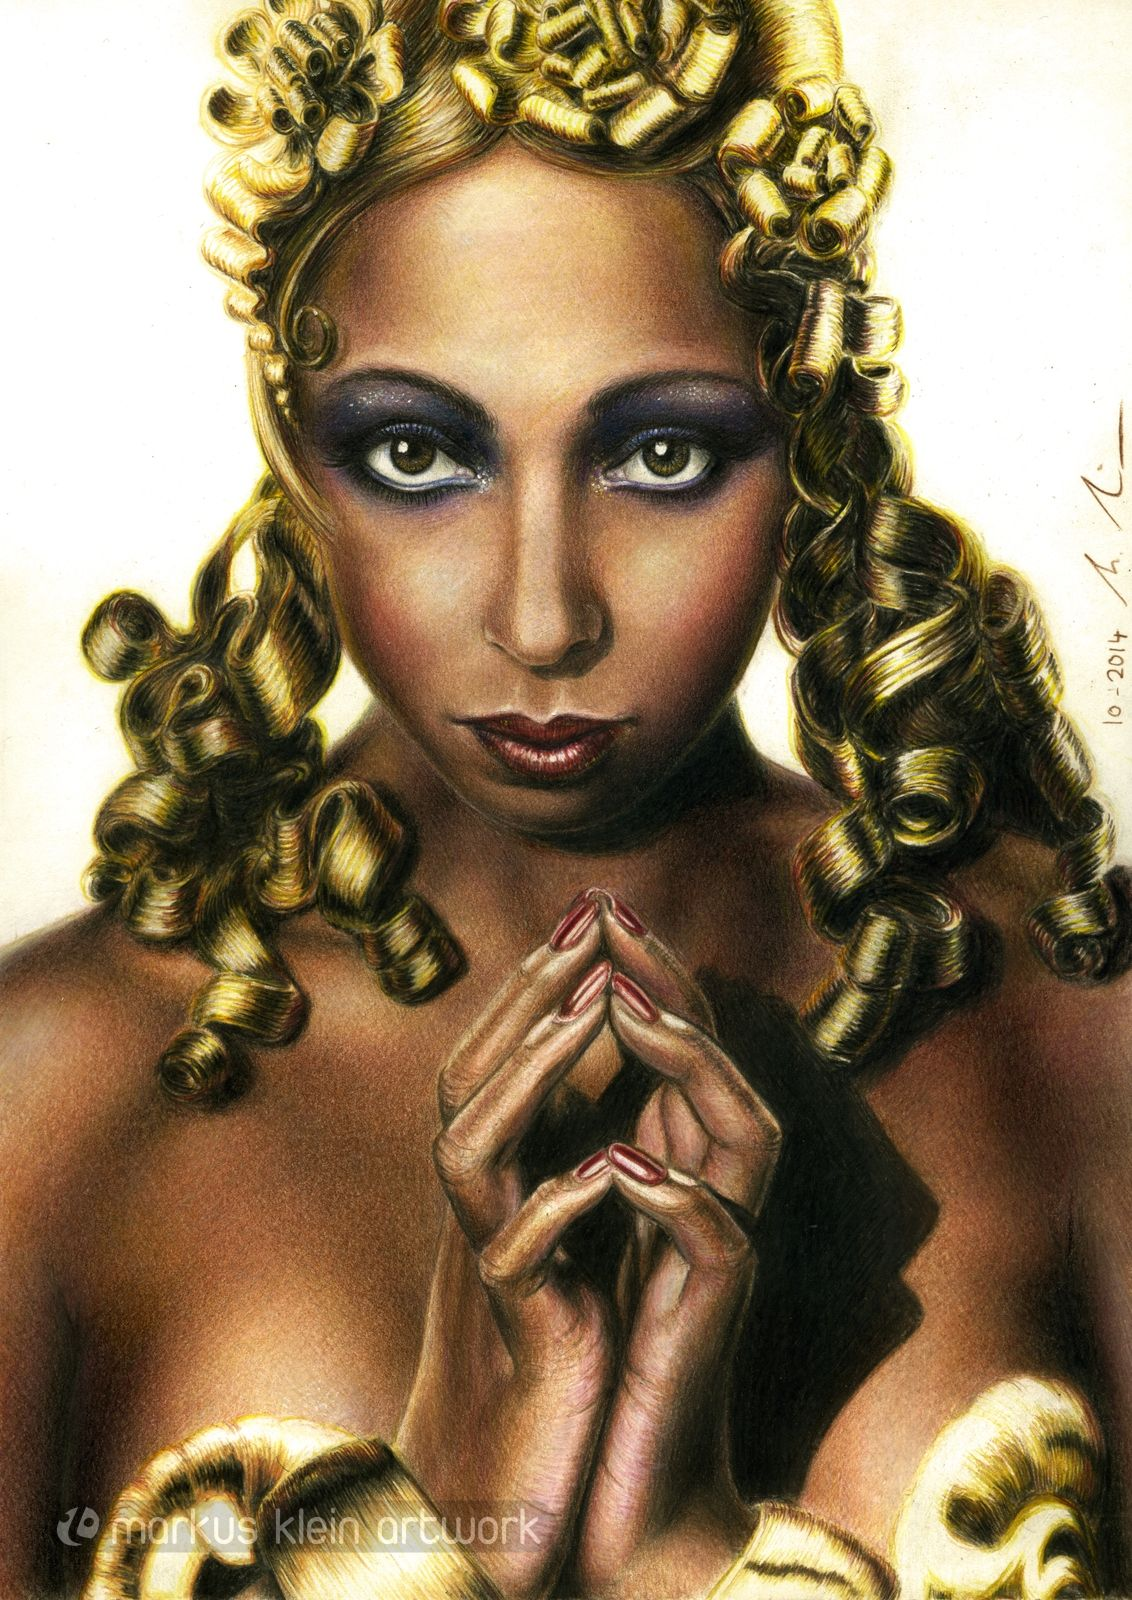 josephine baker movie